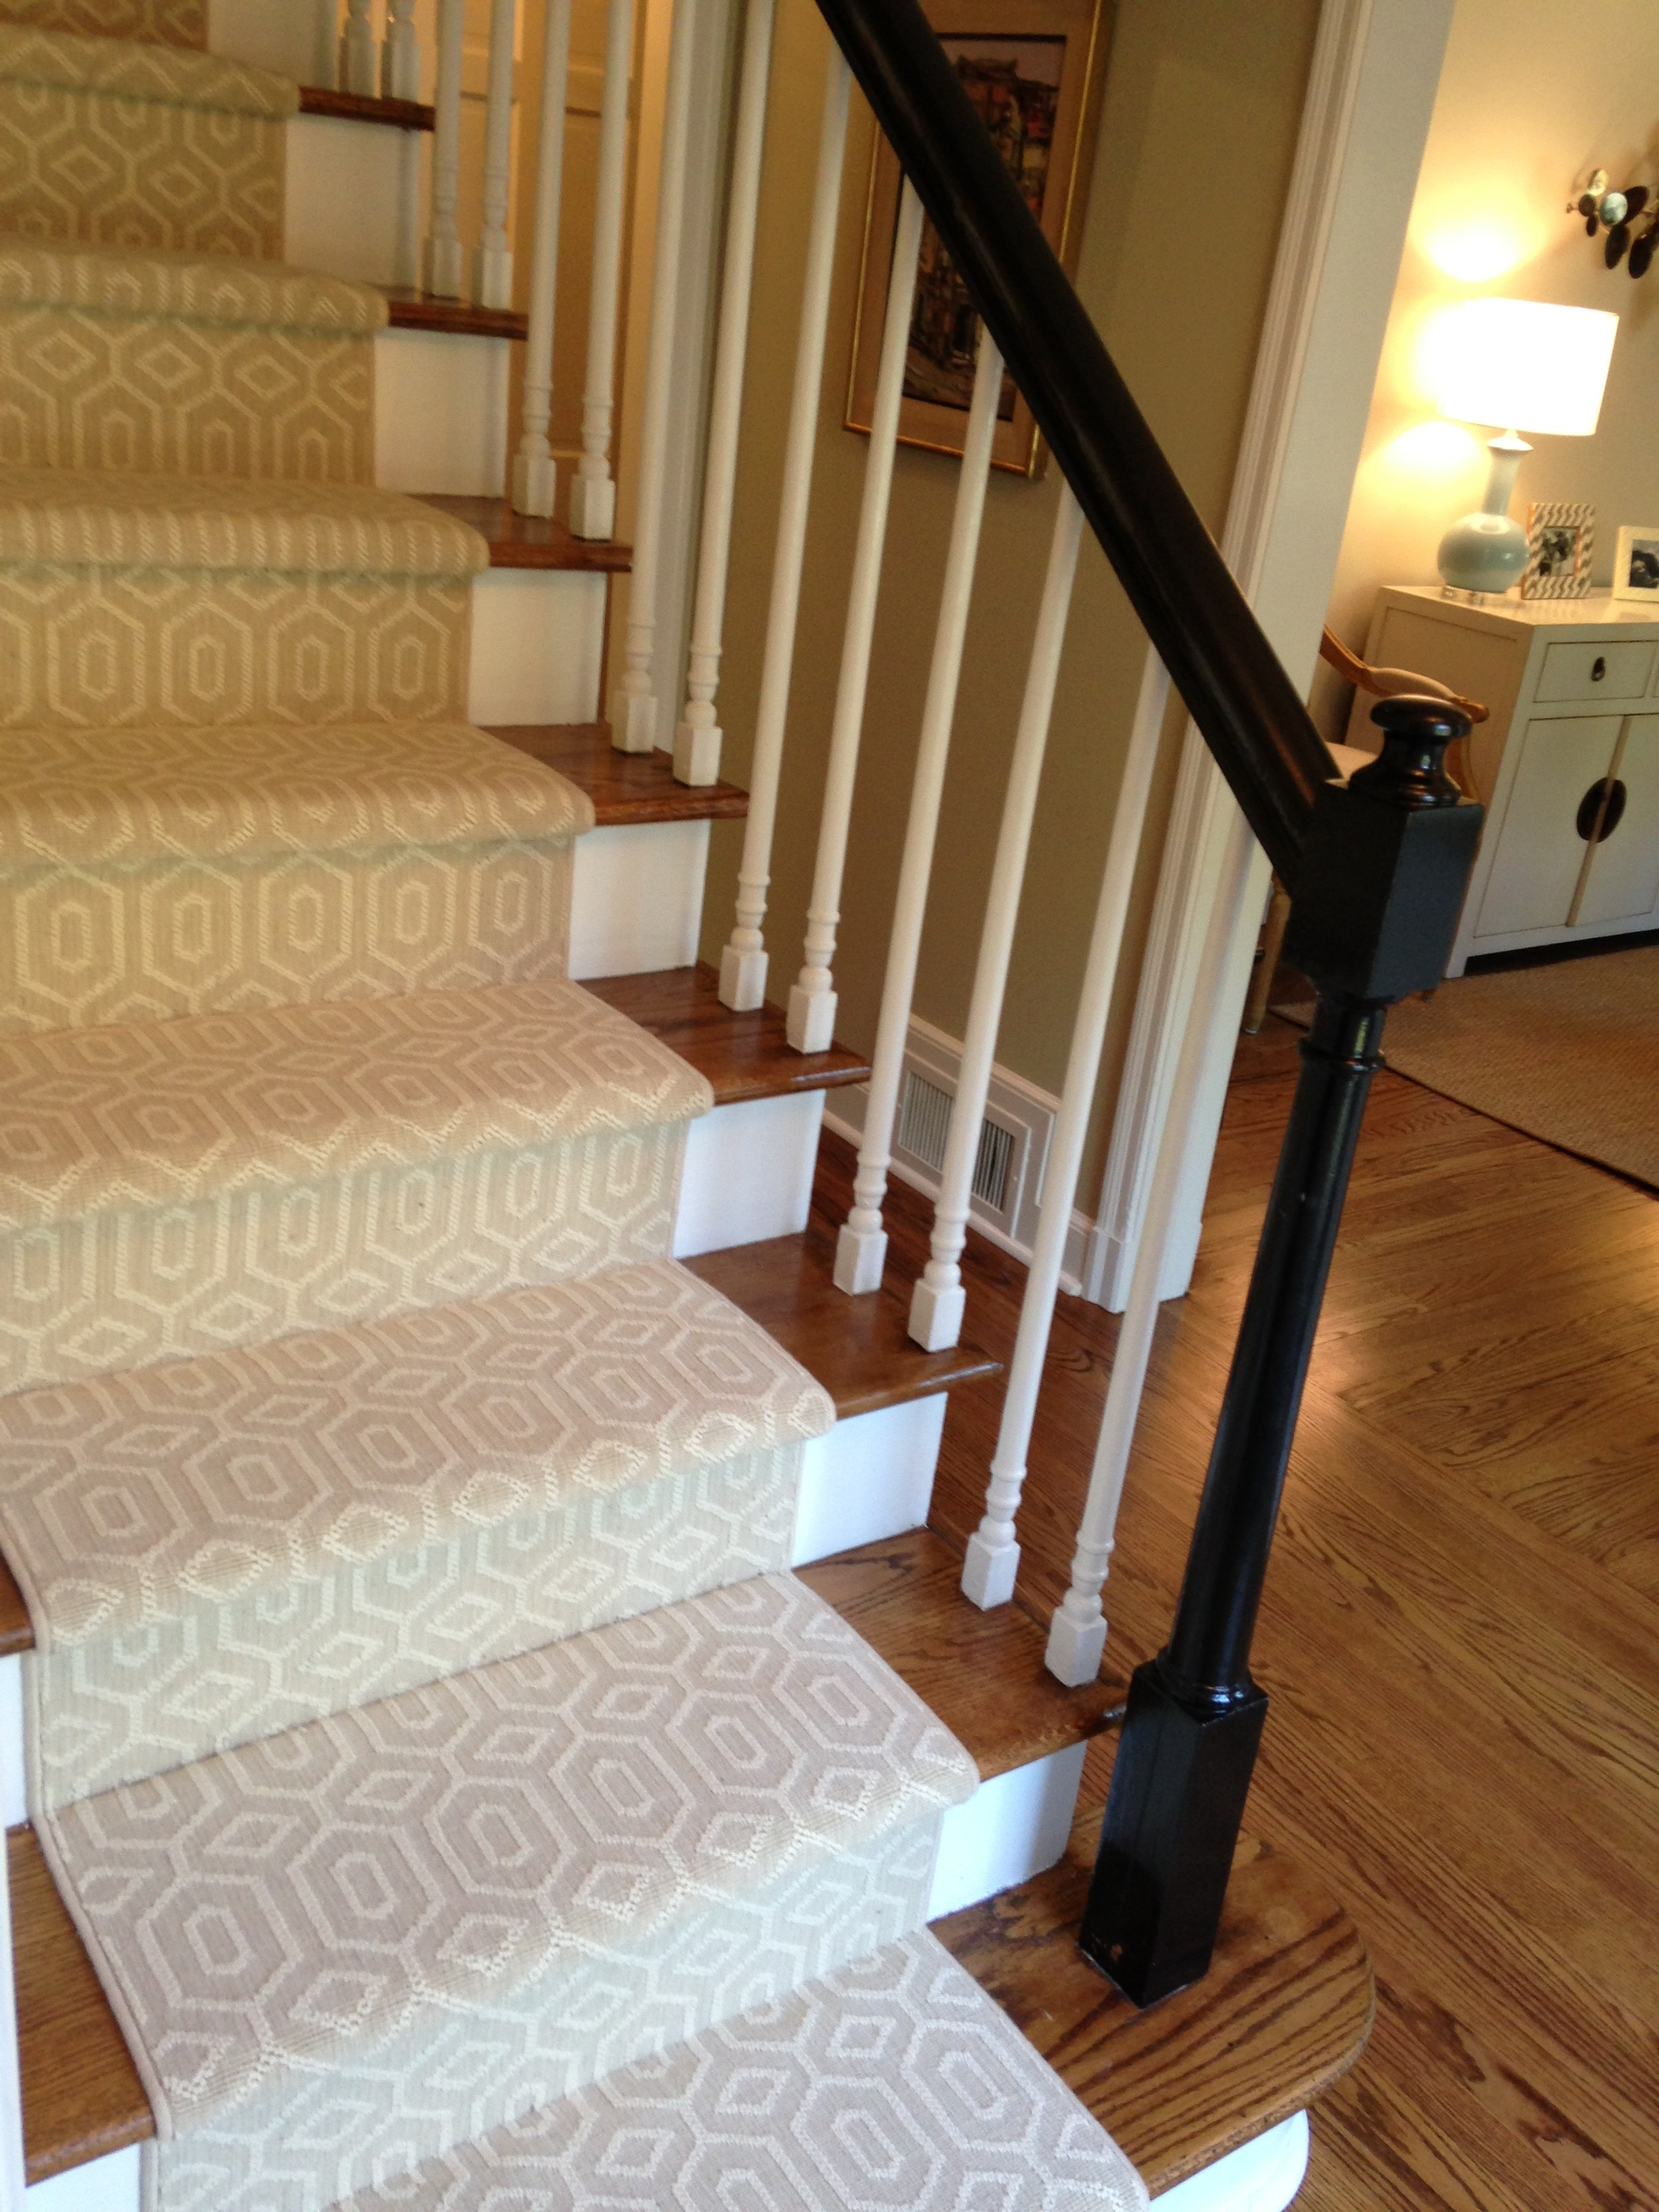 Choosing A Stair Runner Some Inspiration And Lessons Learned Intended For Stair Tread Carpet Runners (Image 4 of 15)